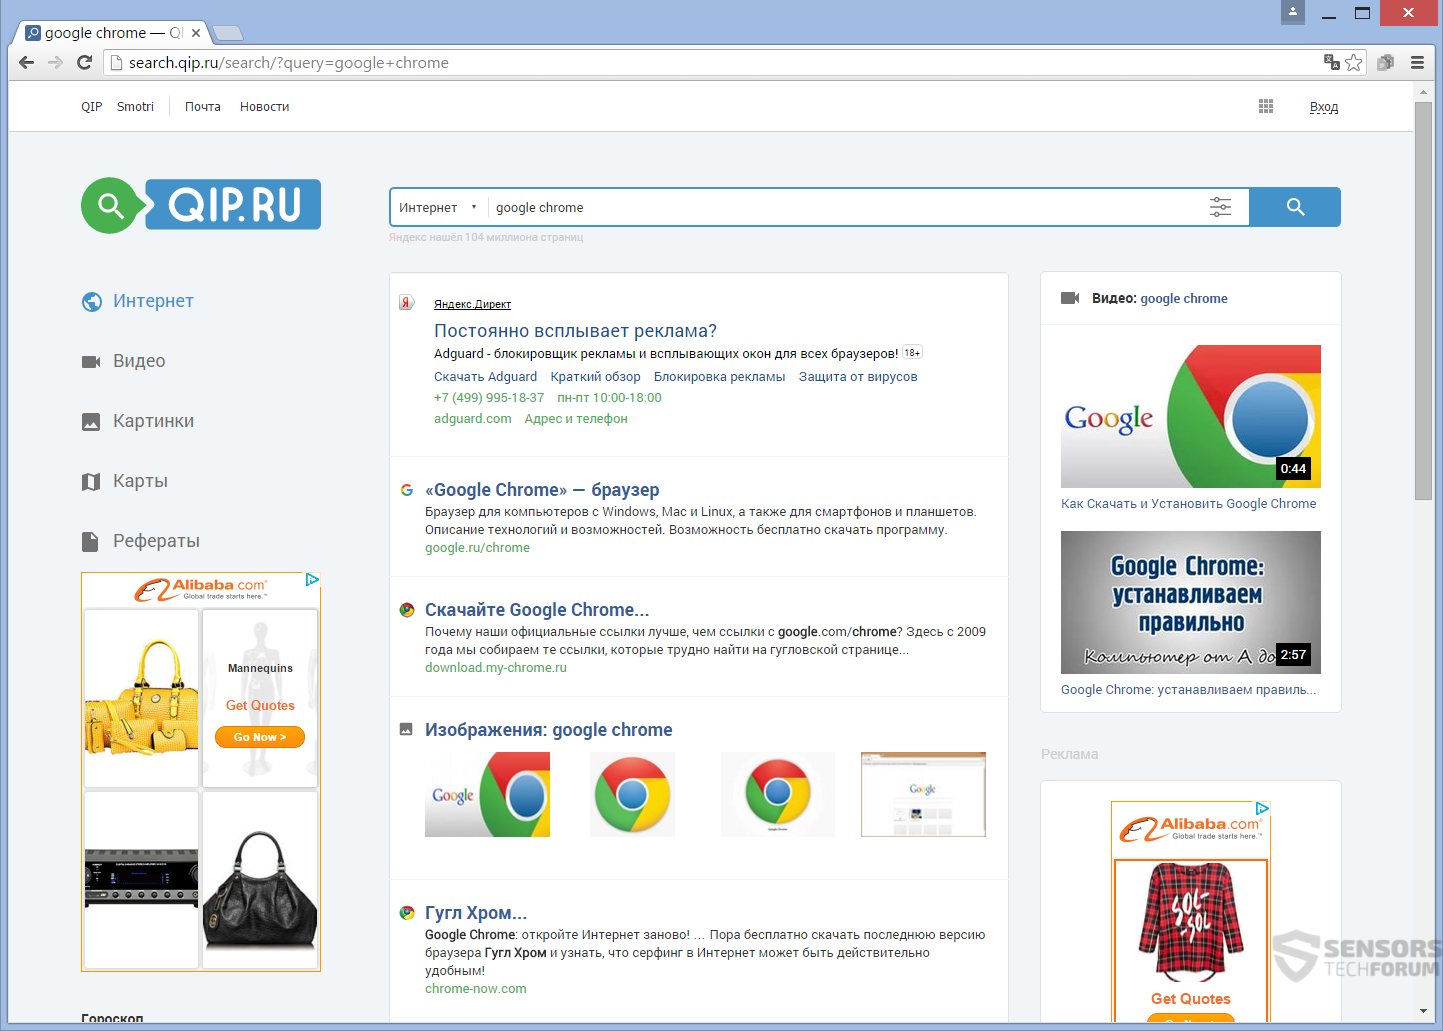 SensorsTechForum-search-qip-ru-search-results-advertisements-ads